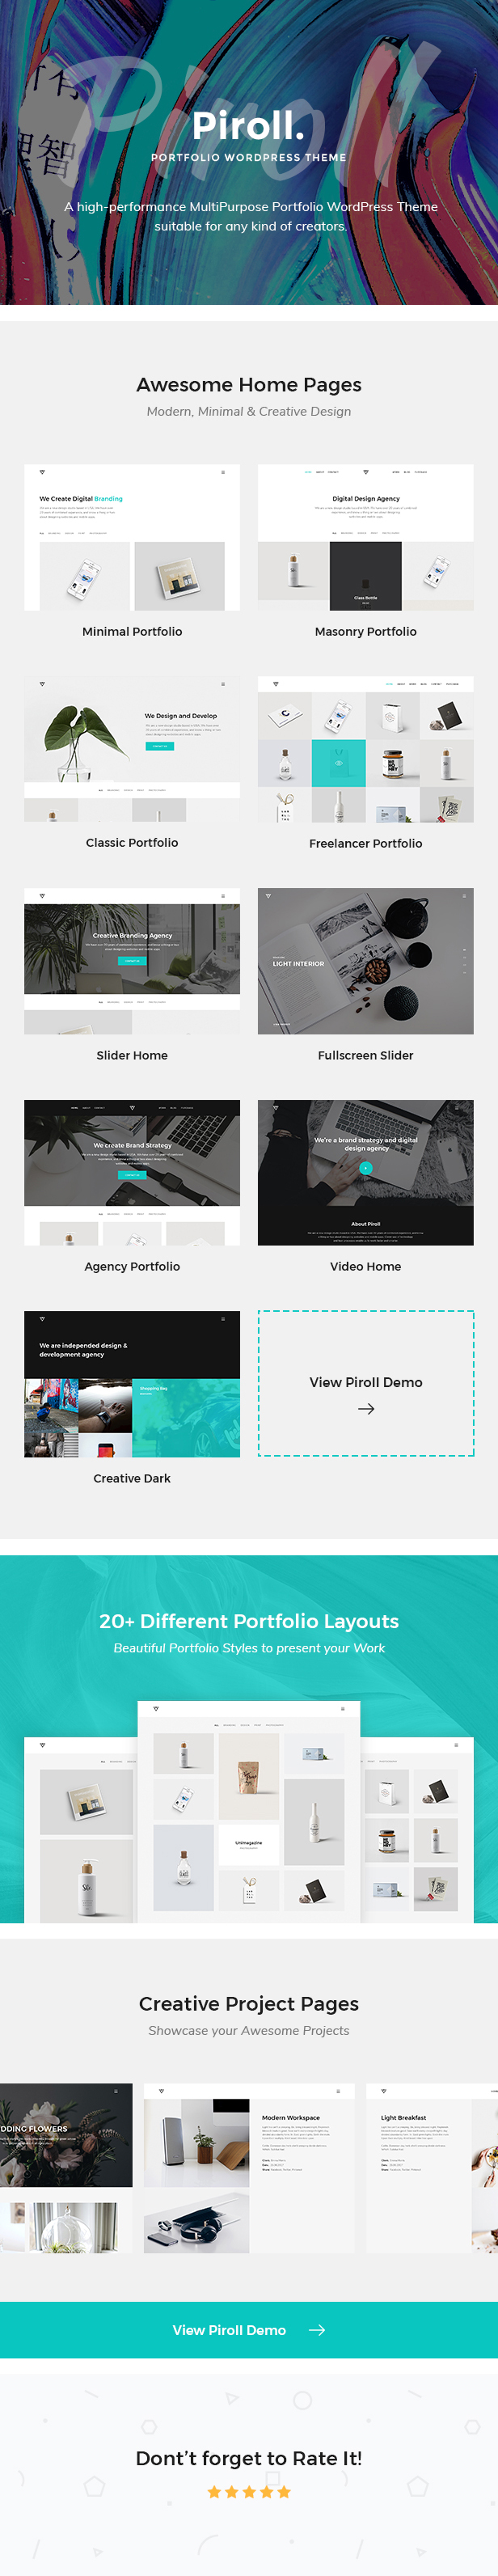 Piroll Theme Features